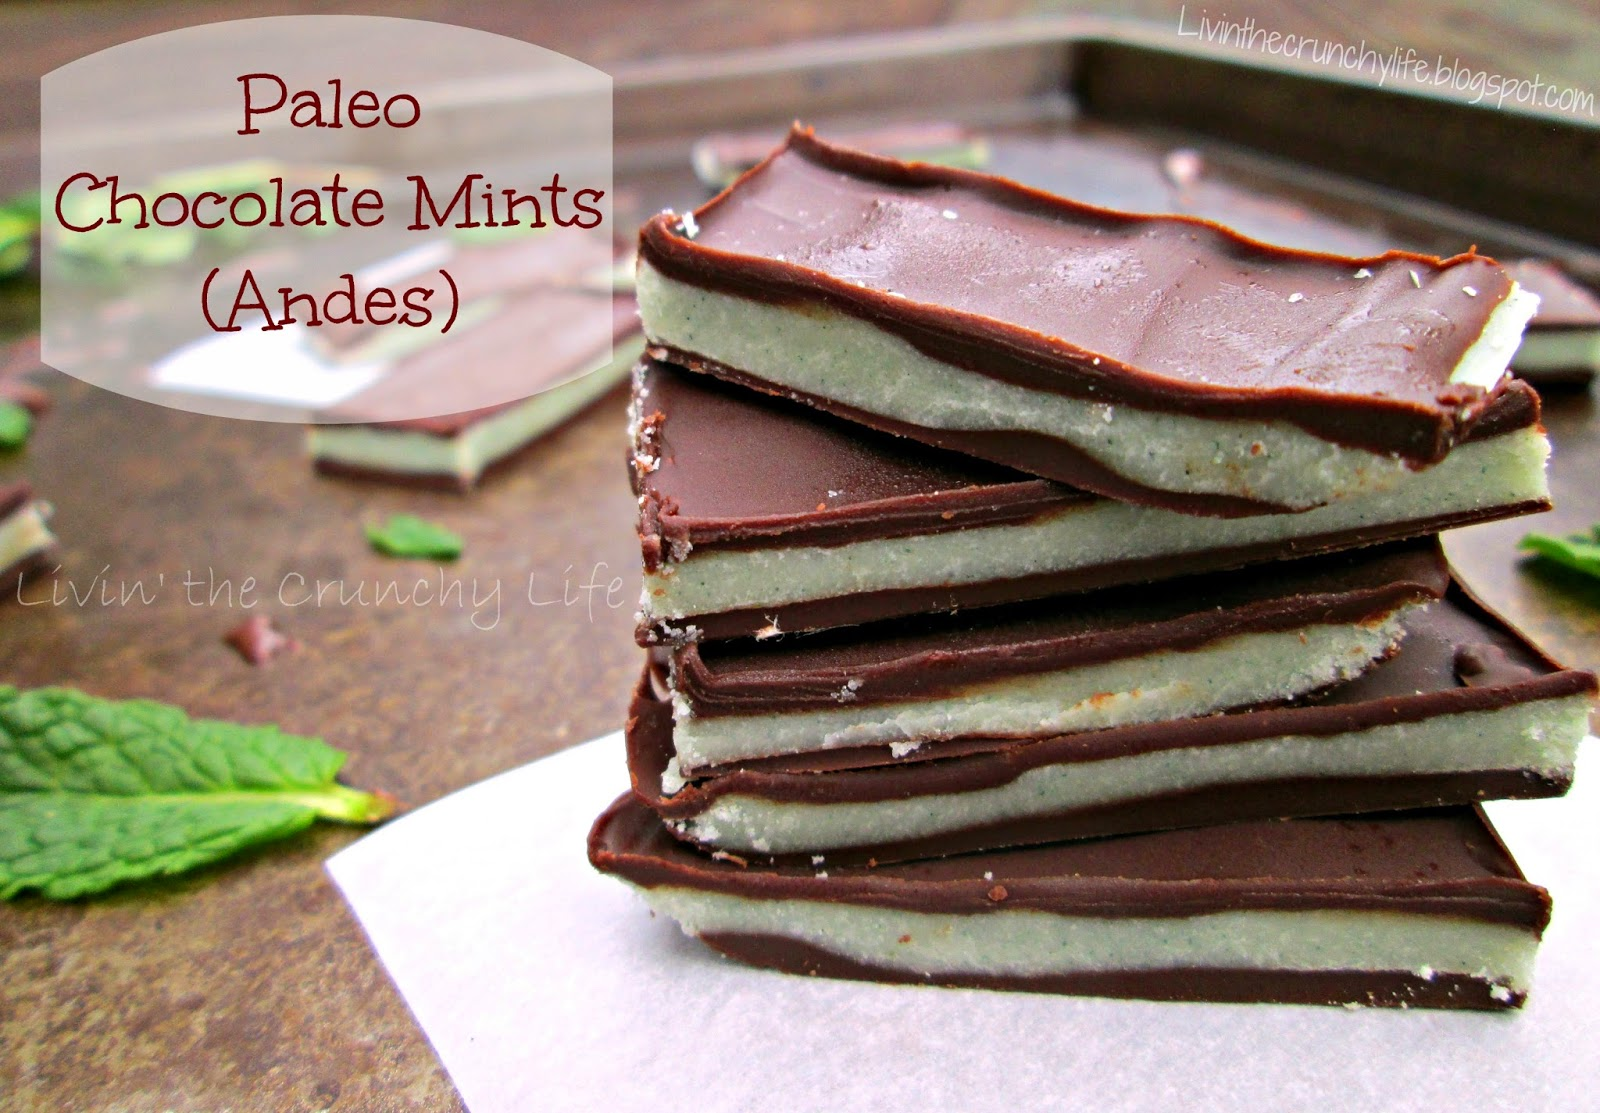 Paleo Andes Dark Chocolate Mints with coconut butter and natural green colors